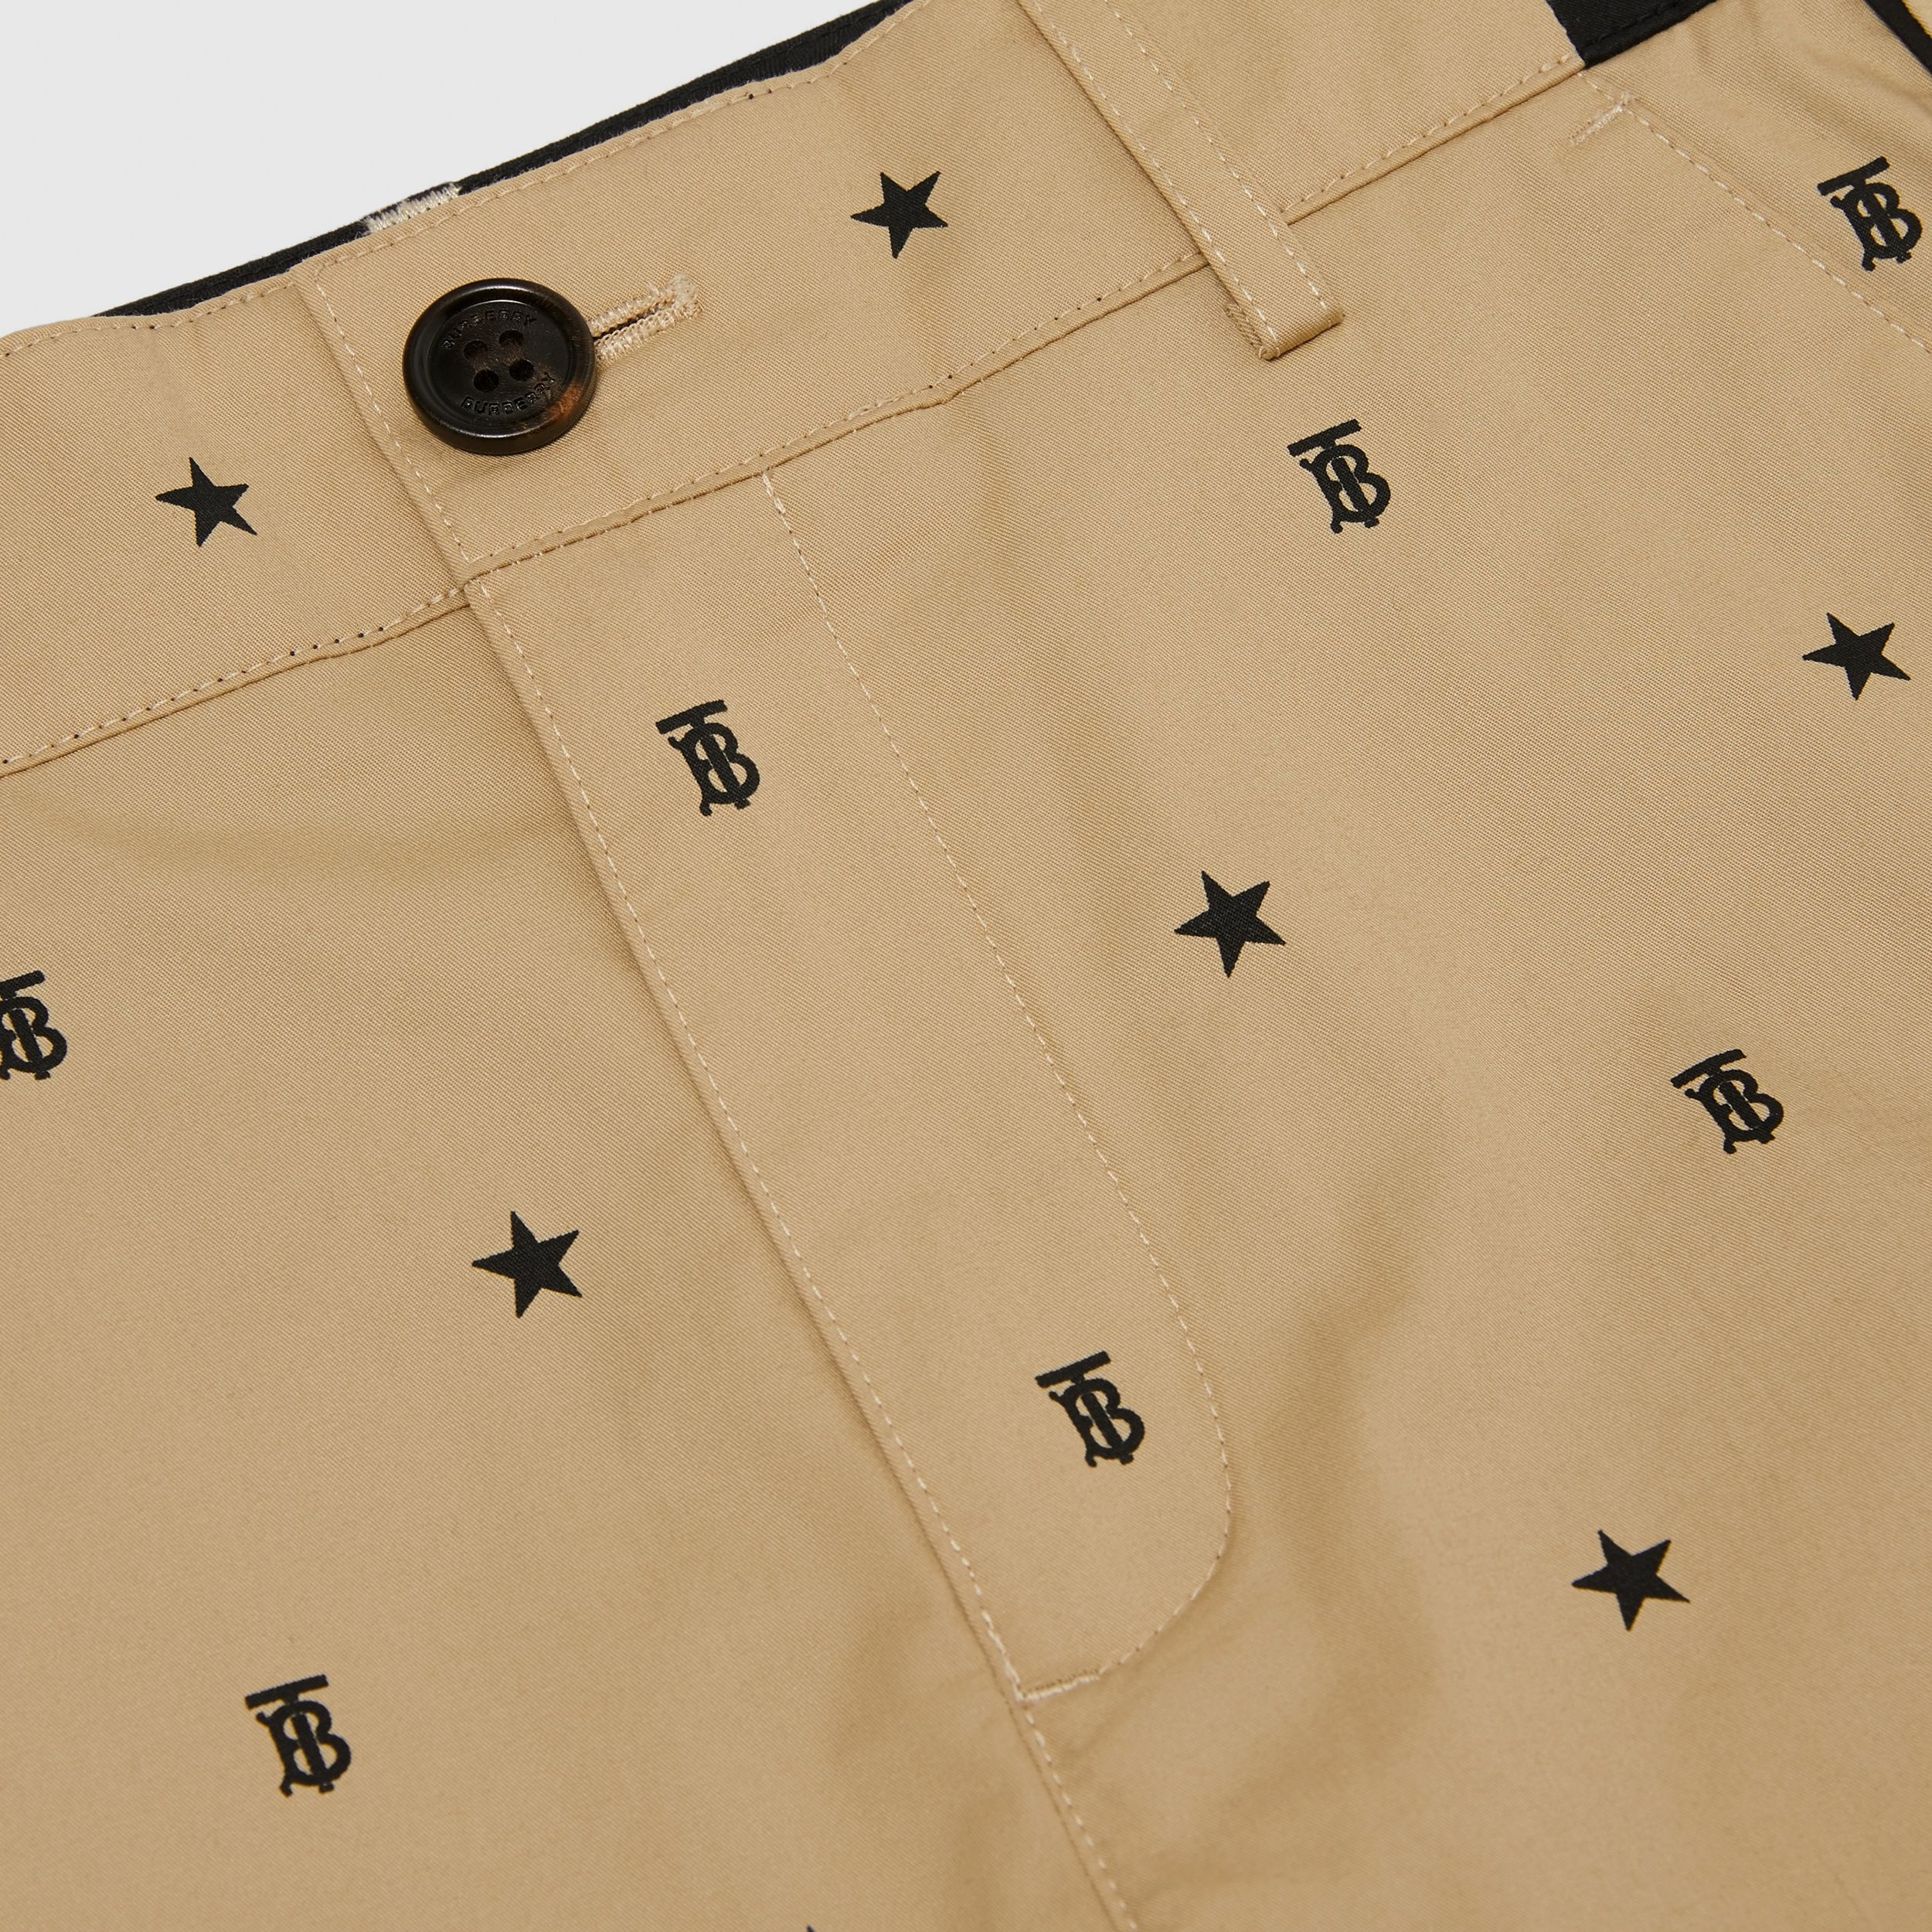 Star and Monogram Motif Tailored Shorts in Sand | Burberry - 2